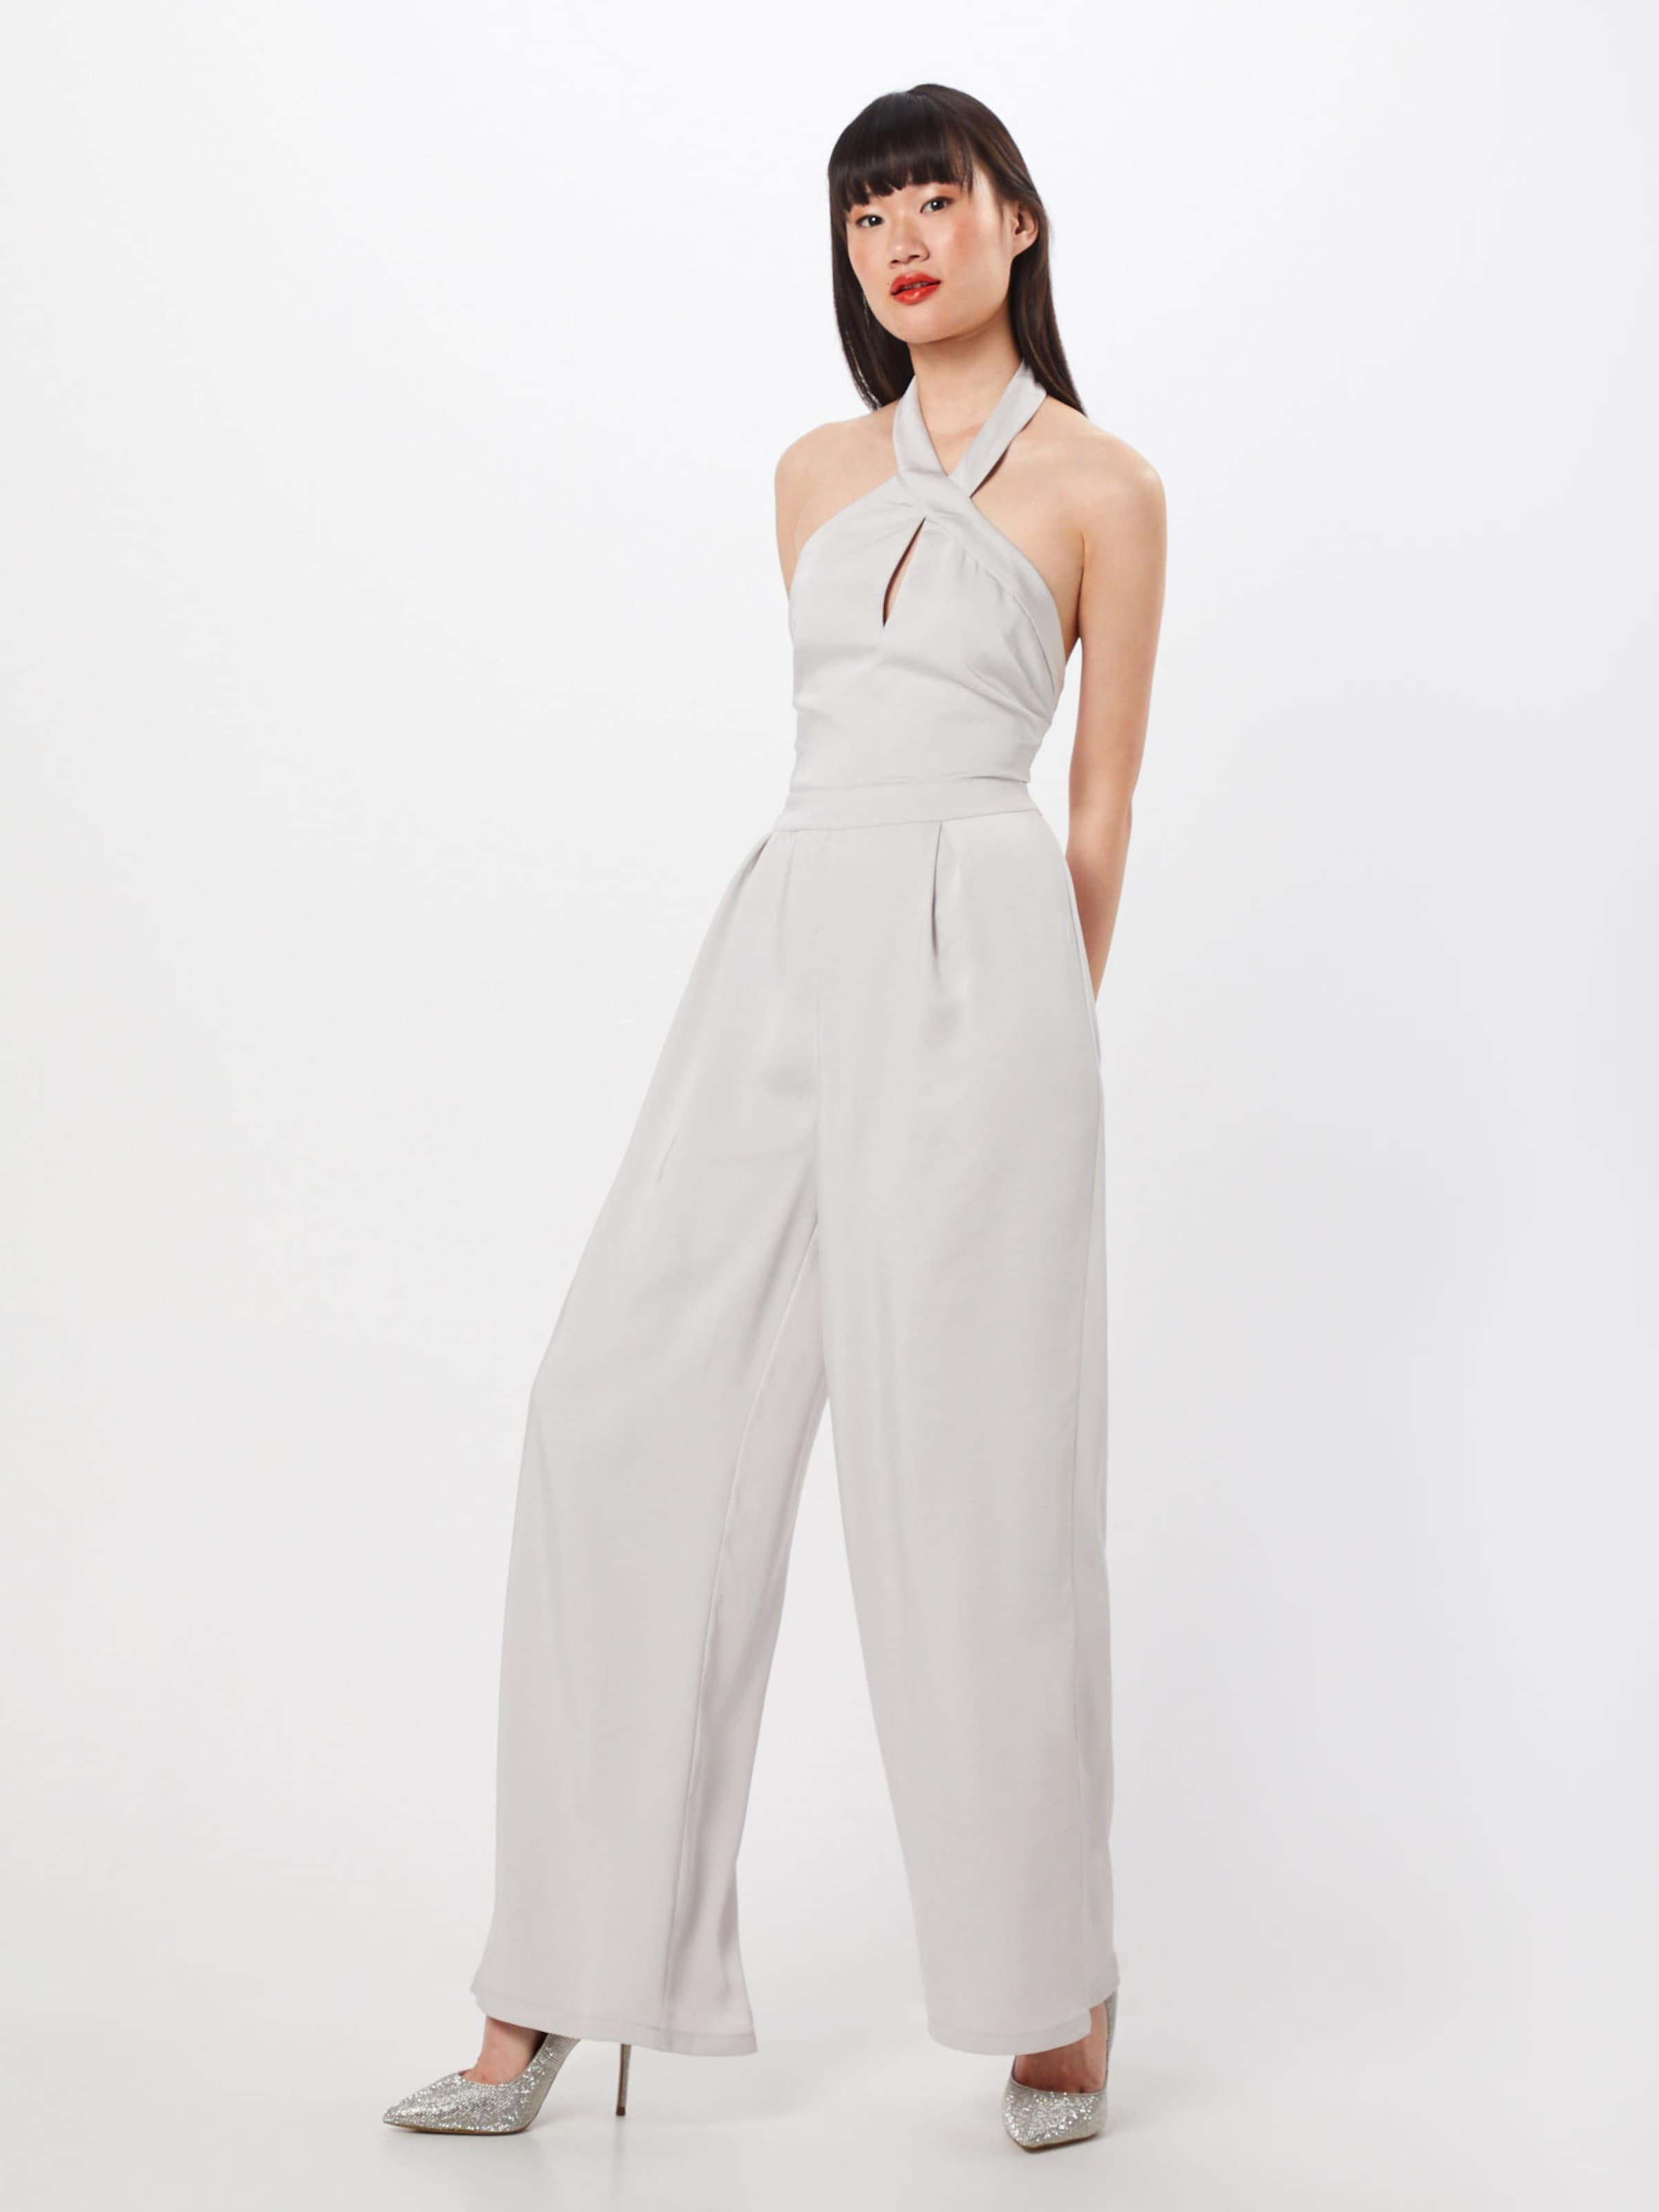 Overall Glamorous 'gs0119' In 'gs0119' In Glamorous Hellgrau Glamorous Overall Overall Hellgrau VUzMGLqpS